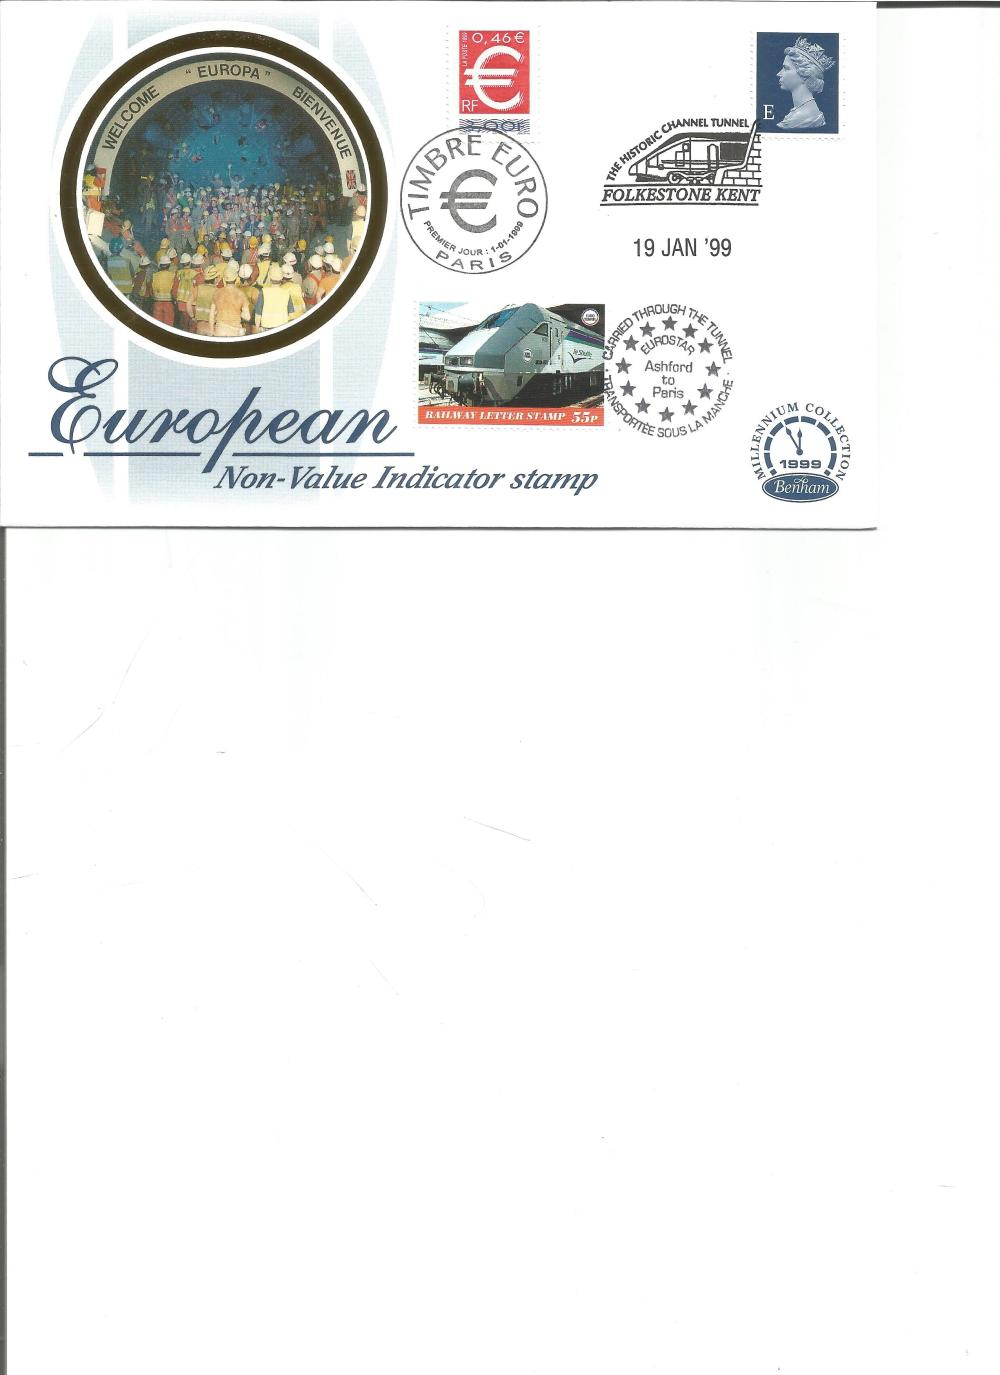 FDC Benham Silk Cover 30p European NVI stamp booklet limited to 5 000 editions BSSP4 PM 19th Jan